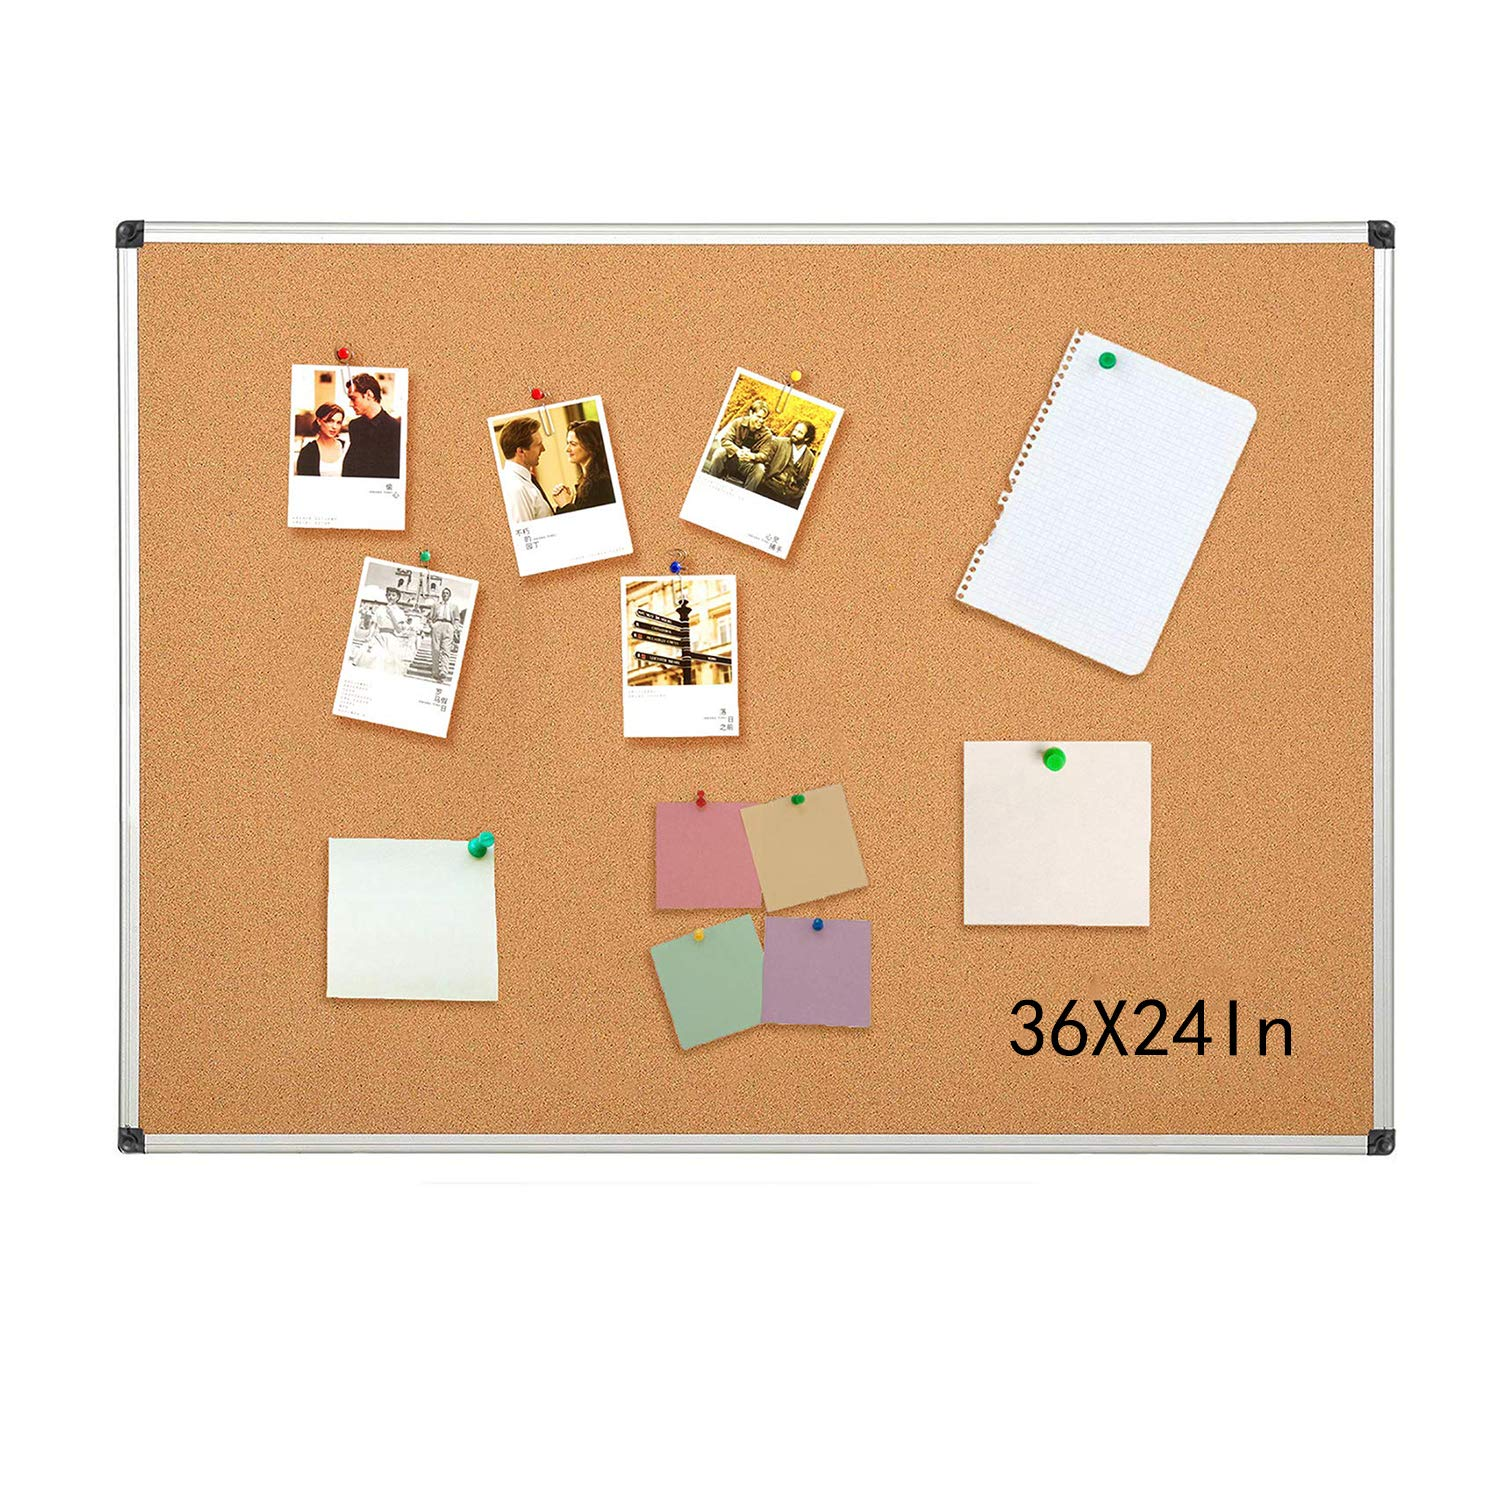 Aluminum Frame Bulletin Board 48 x 36 Inches, Display Organization Cork Board, Thicken and Reinforce, 2 Pack